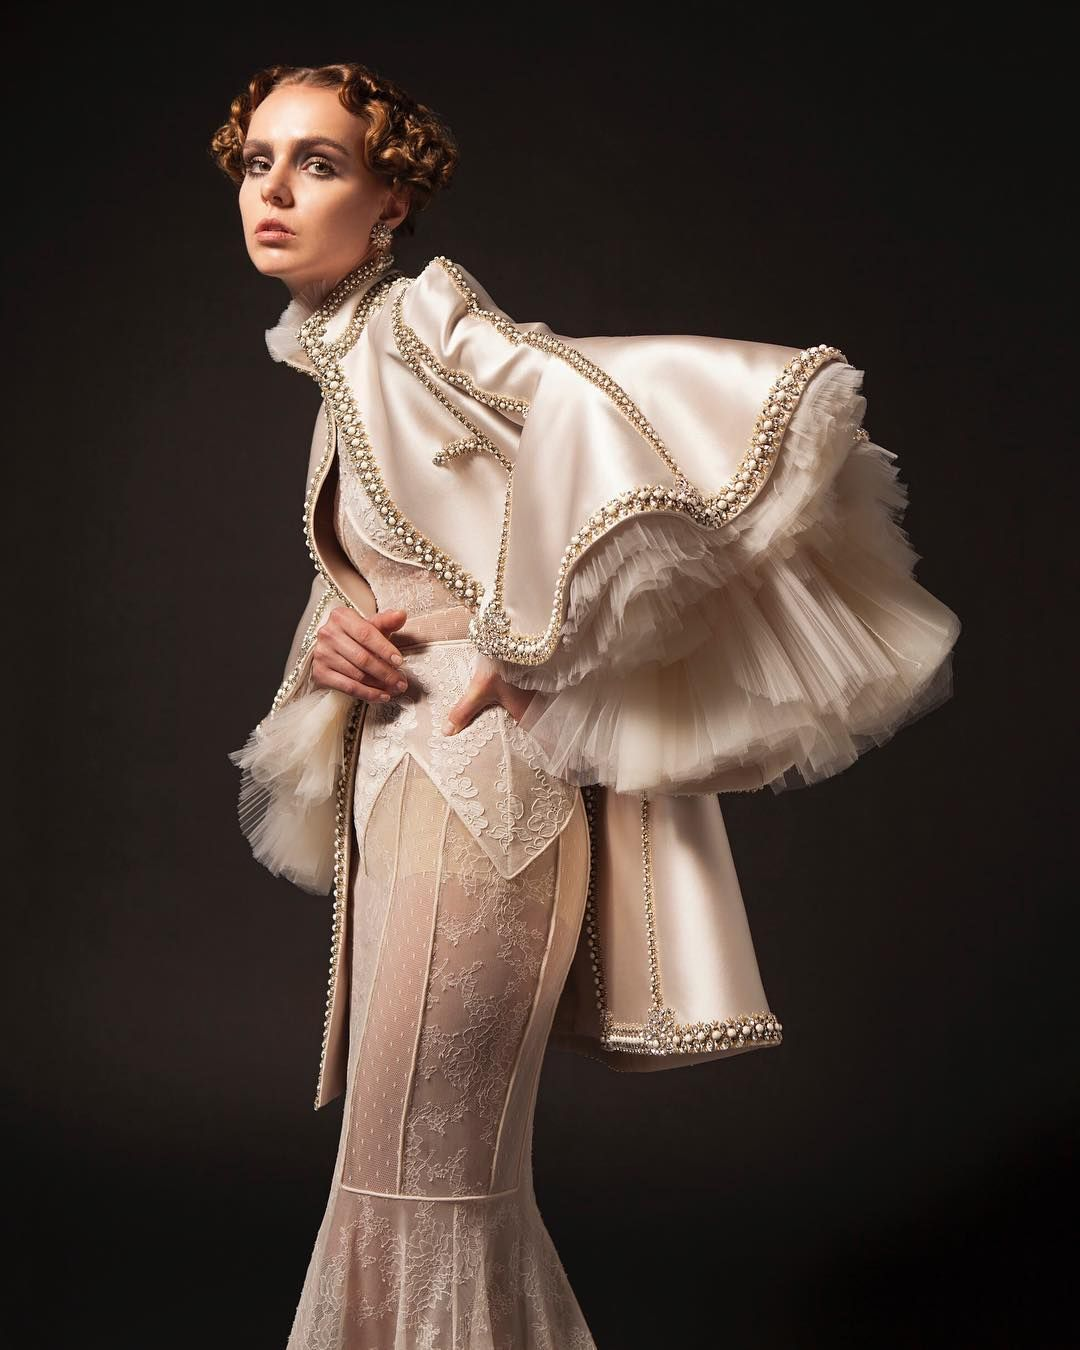 SS17: The Royal Haute Couture Collection by Krikor Jabotian